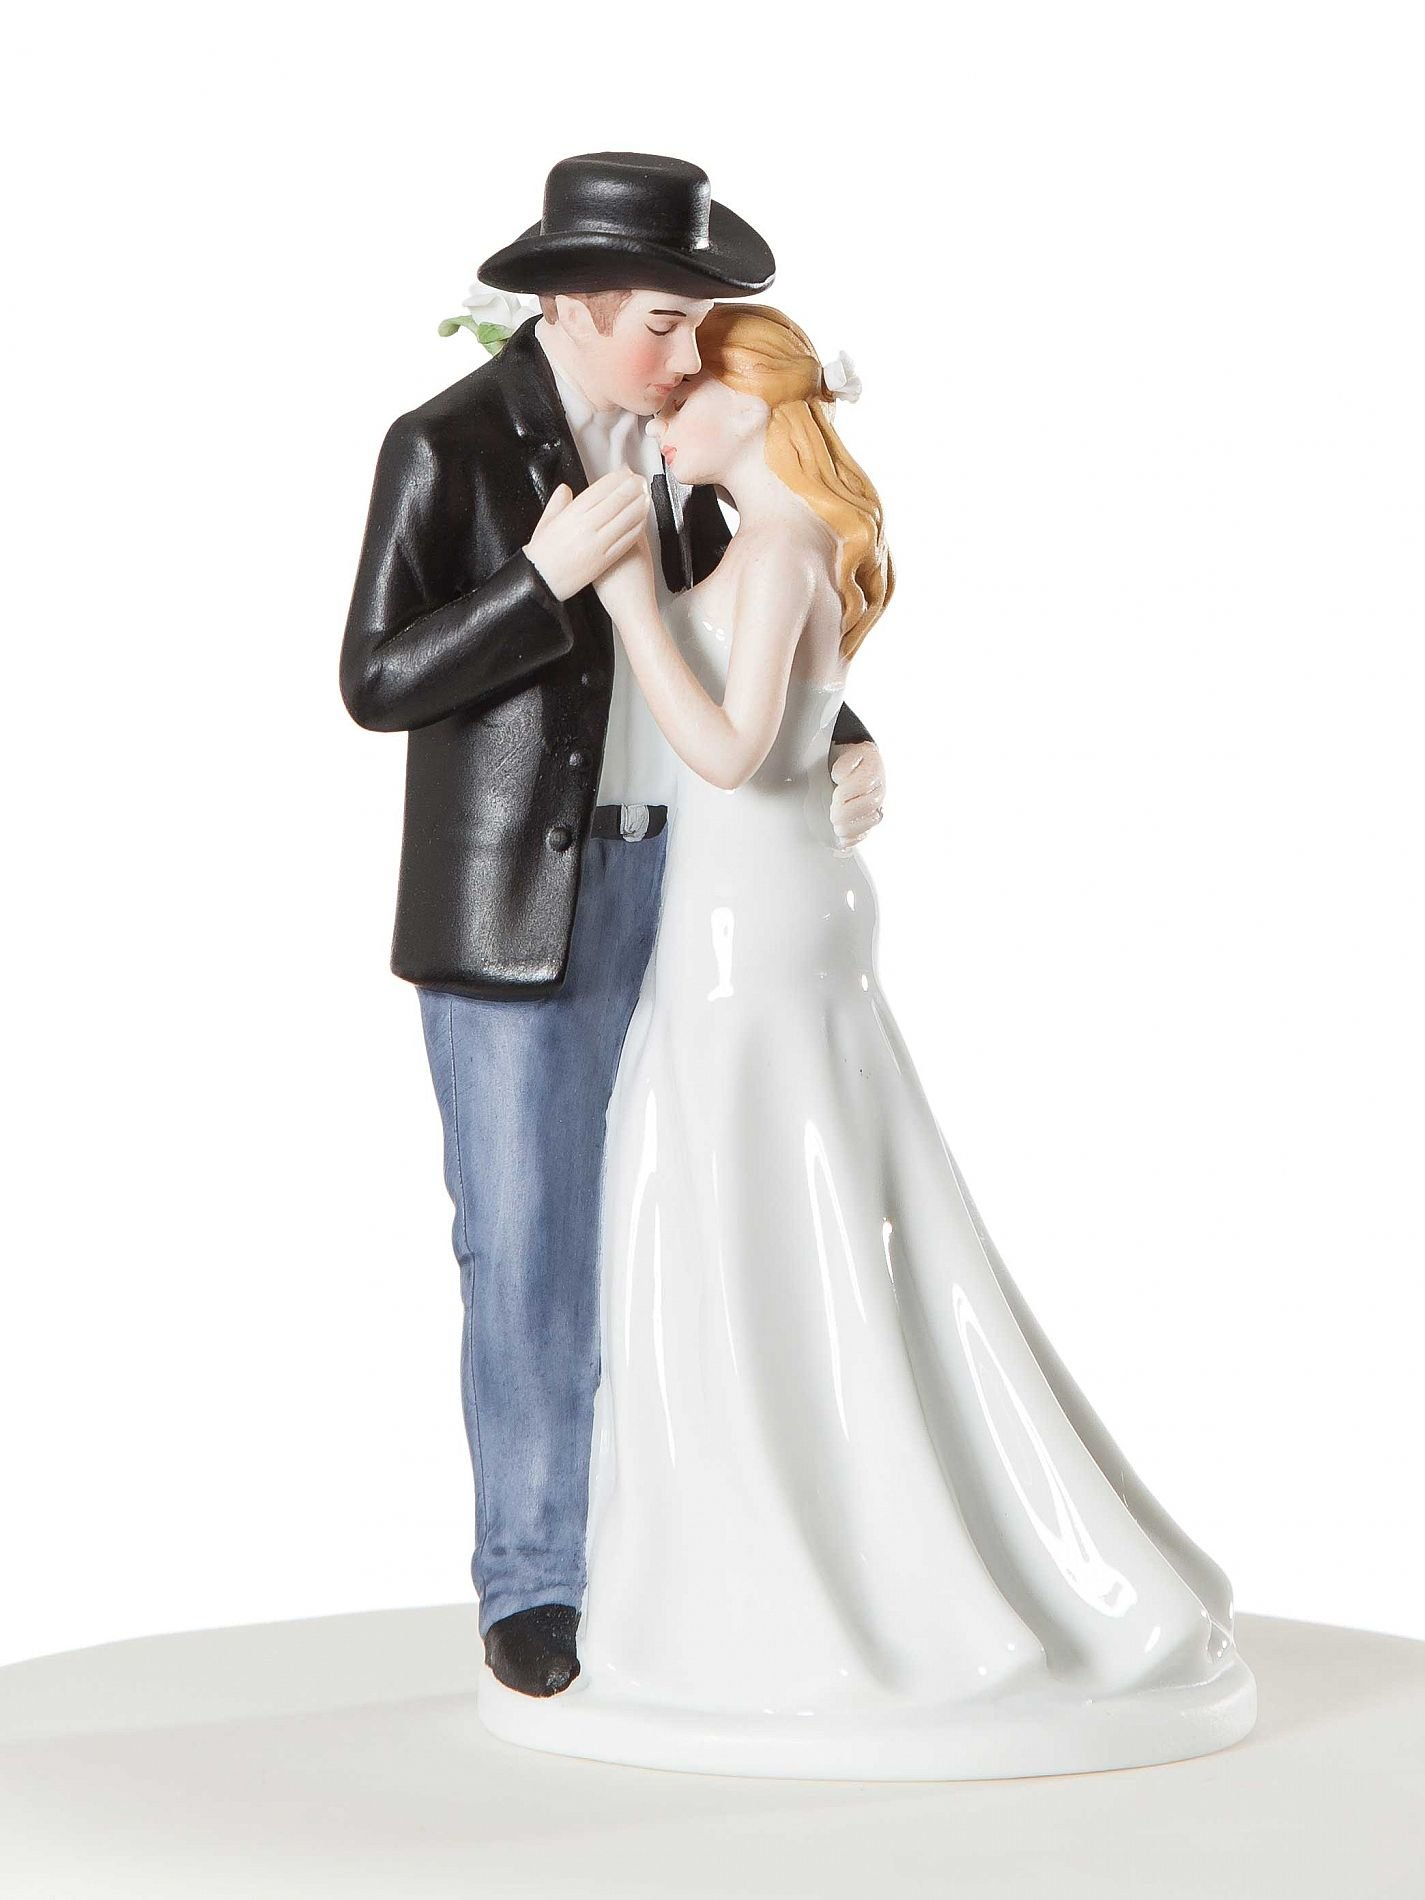 Wedding Collectibles Personalized Old Fashion Lovin Western Wedding Cake Topper: Bride Hair: BROWN - Groom Hair: BROWN